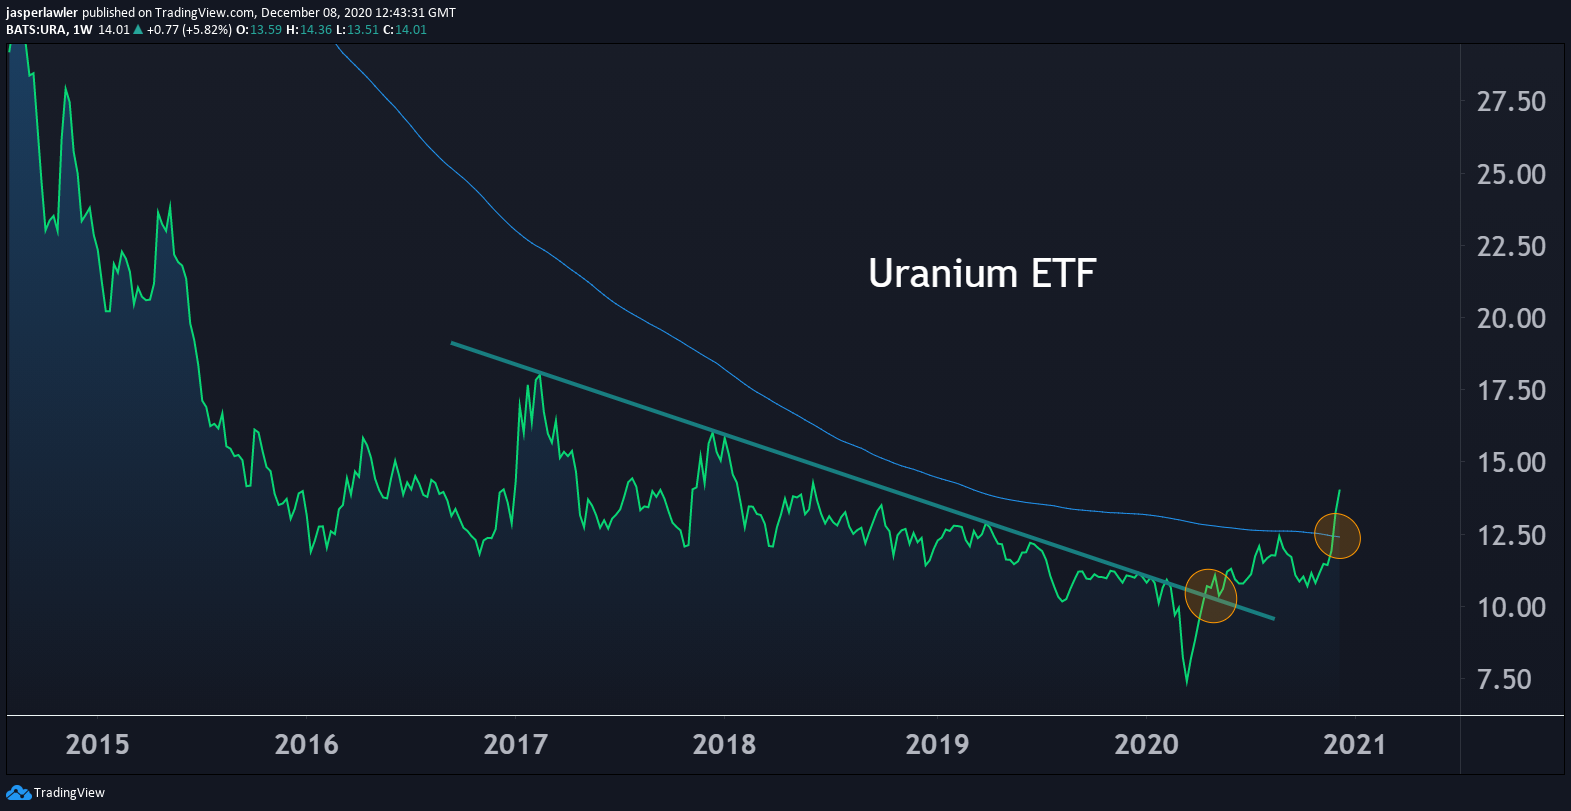 This Uranium ETF is breaking out